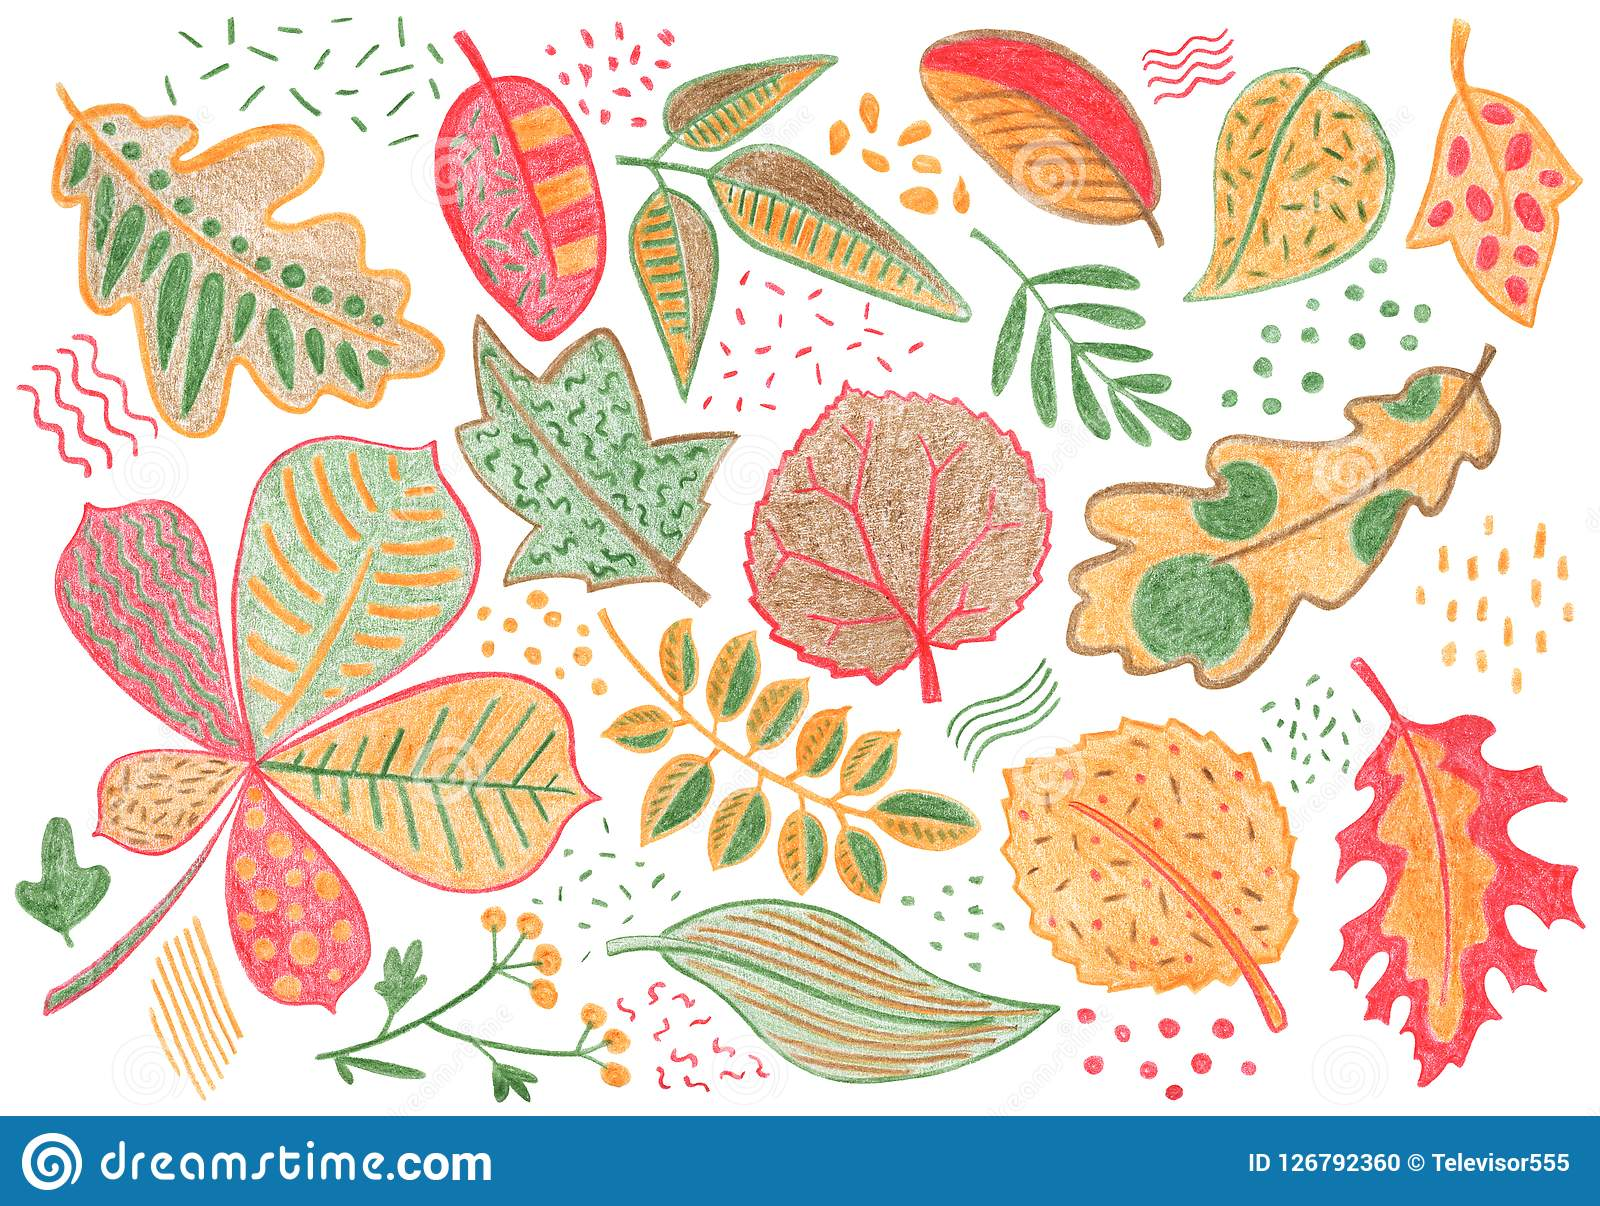 Autumn Leaves By Color Pencil On White Background Falling